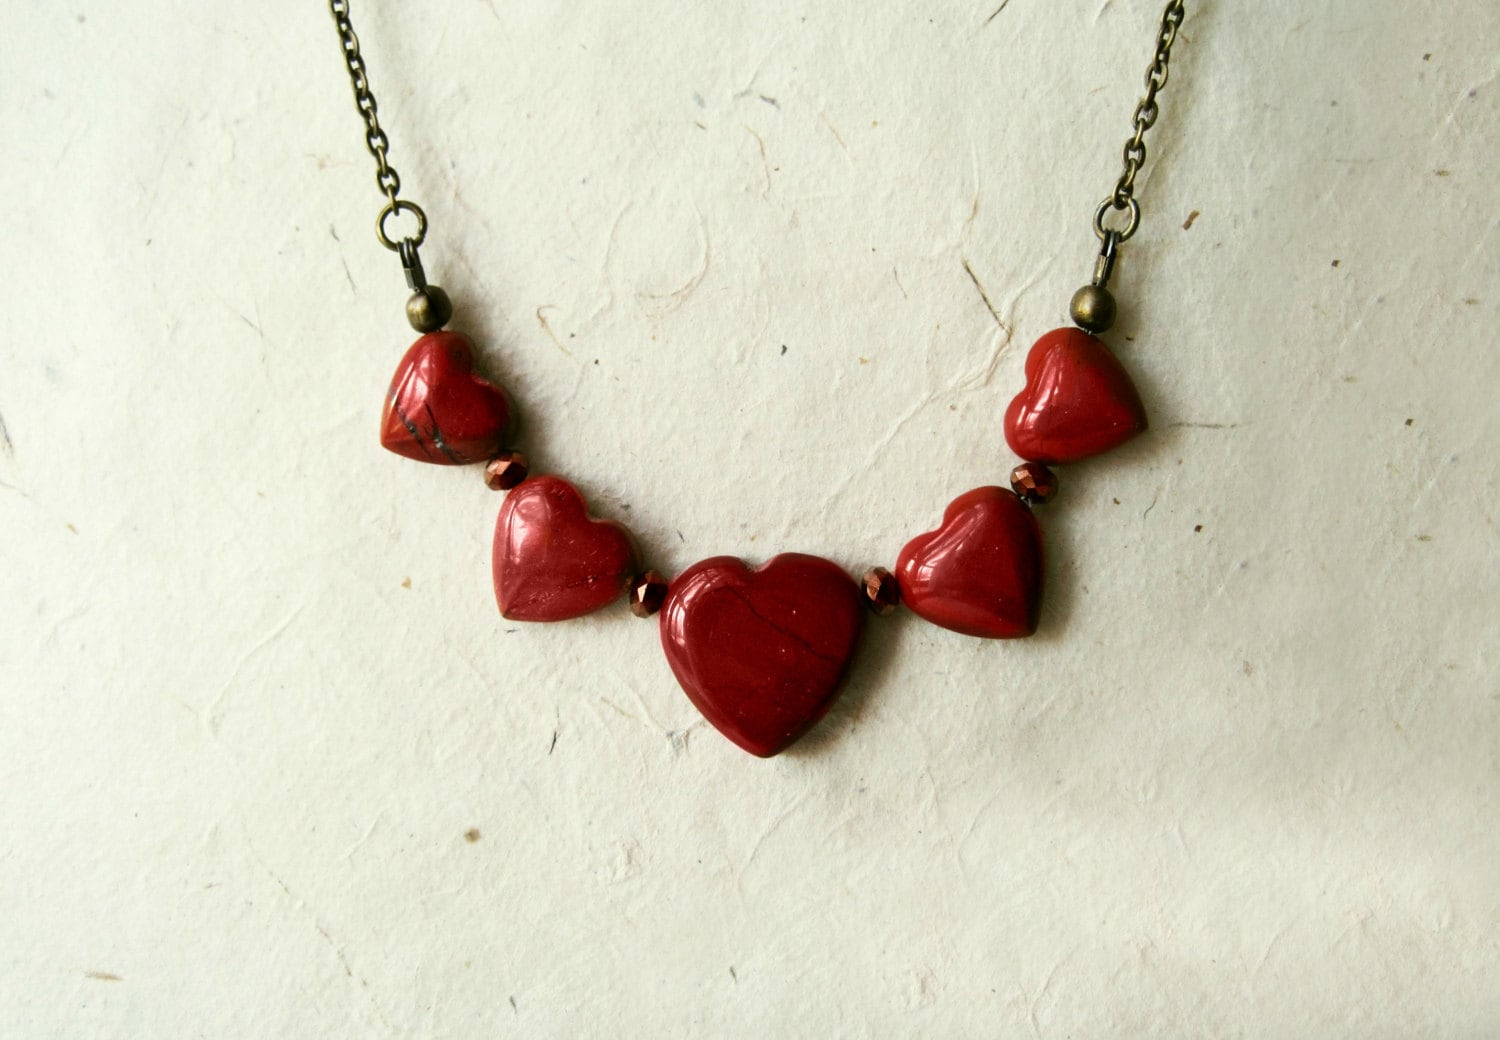 Red Jasper Heart Necklace.  Love Jewelry. Graduated Natural Gemstone Necklace. Rustic Boho Jewelry. Unique Valentine's Day Gifts for Her. - PiggleAndPop